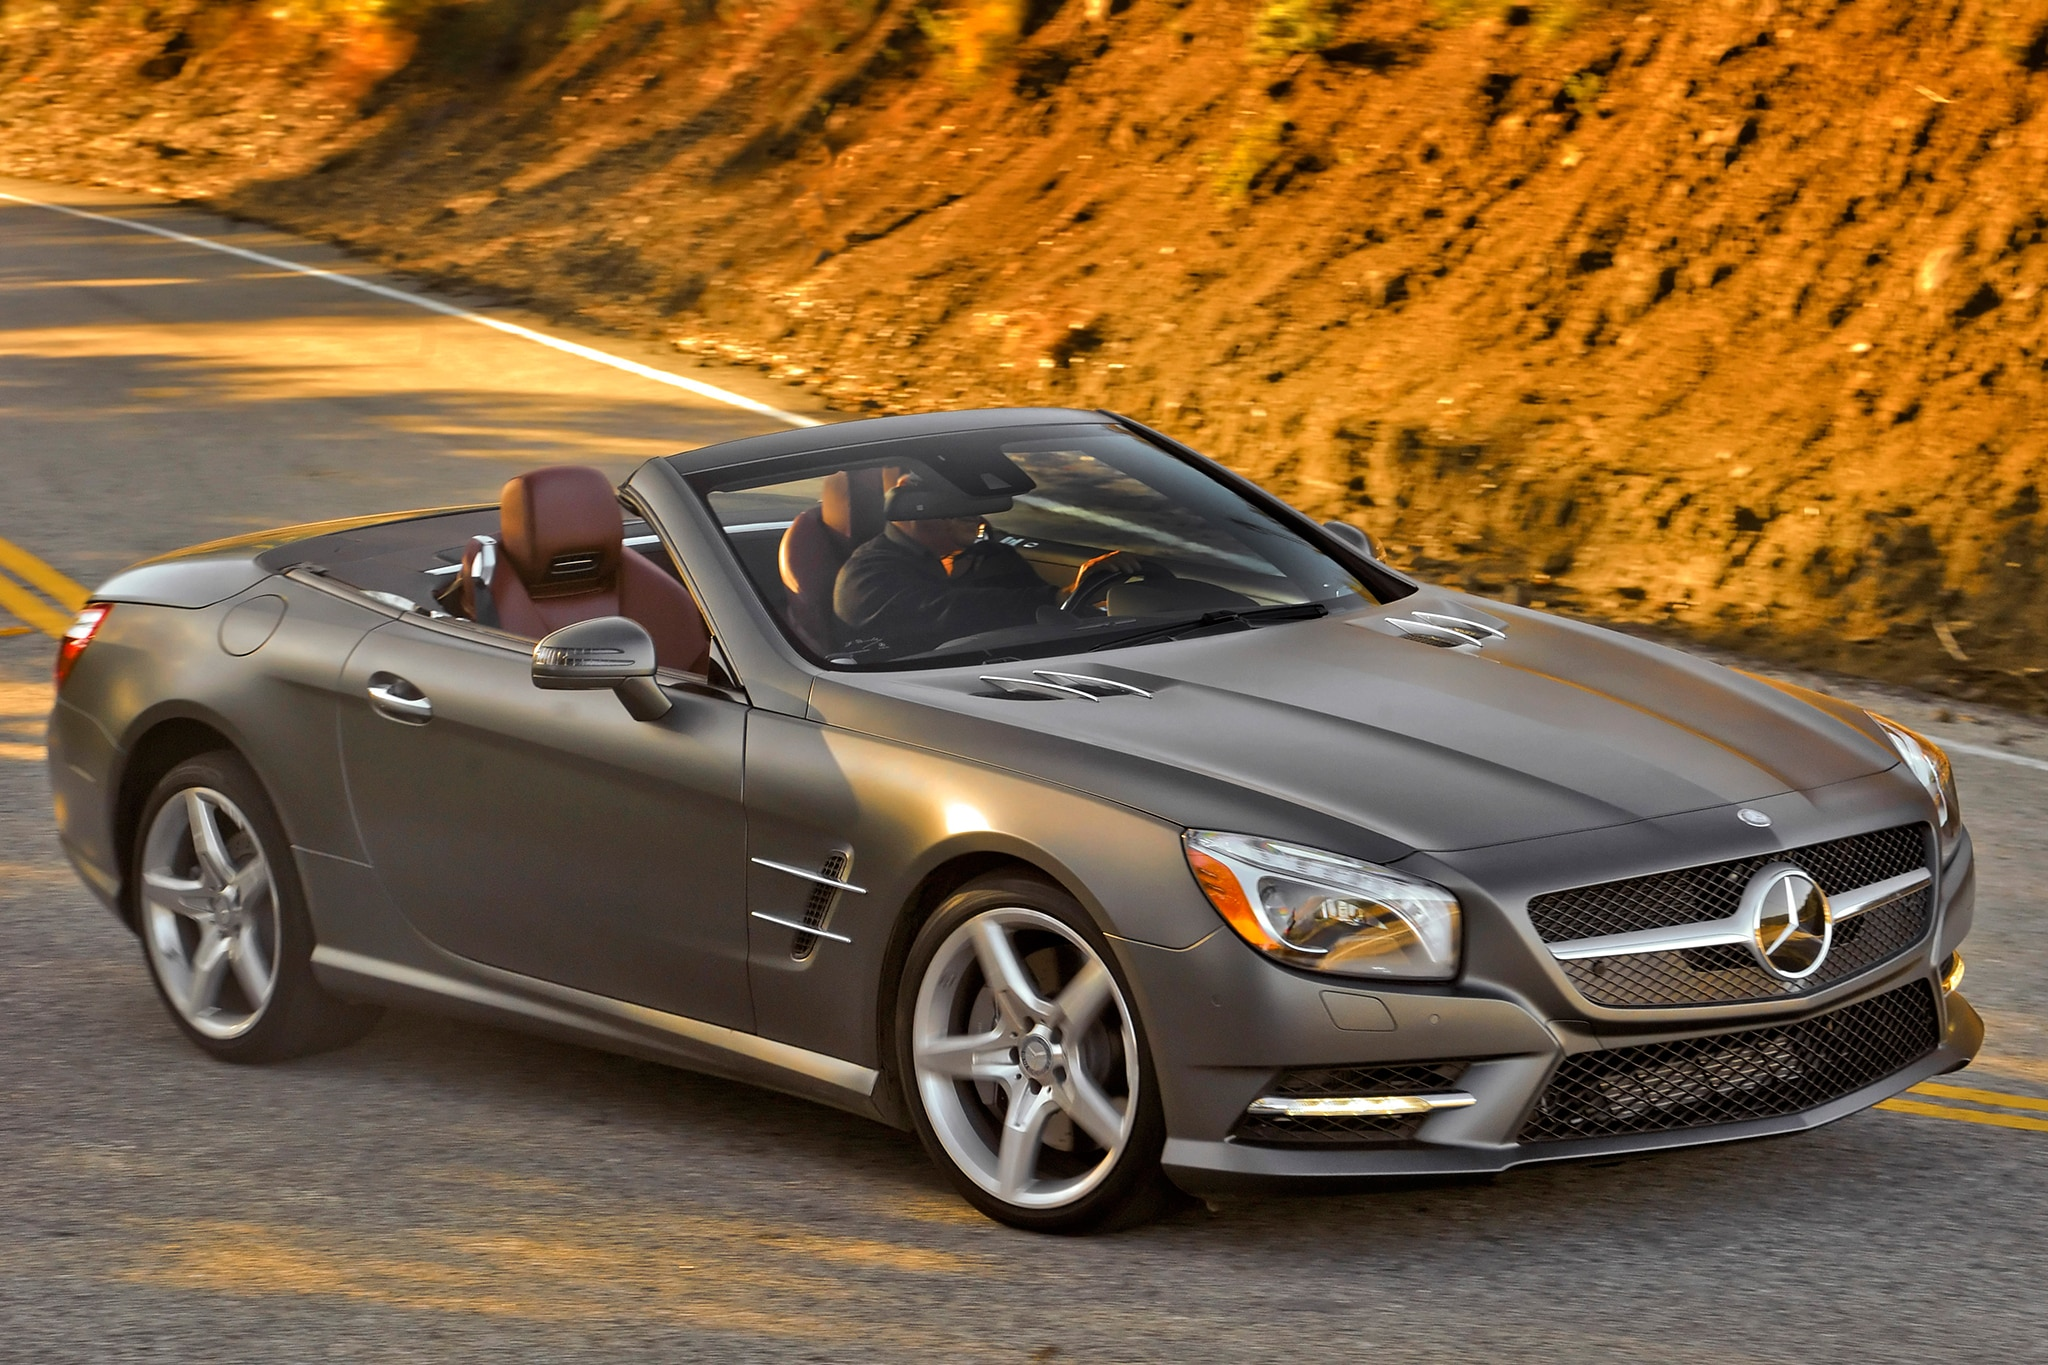 2015 mercedes benz sl400 receives new turbocharged v 6 for New model of mercedes benz